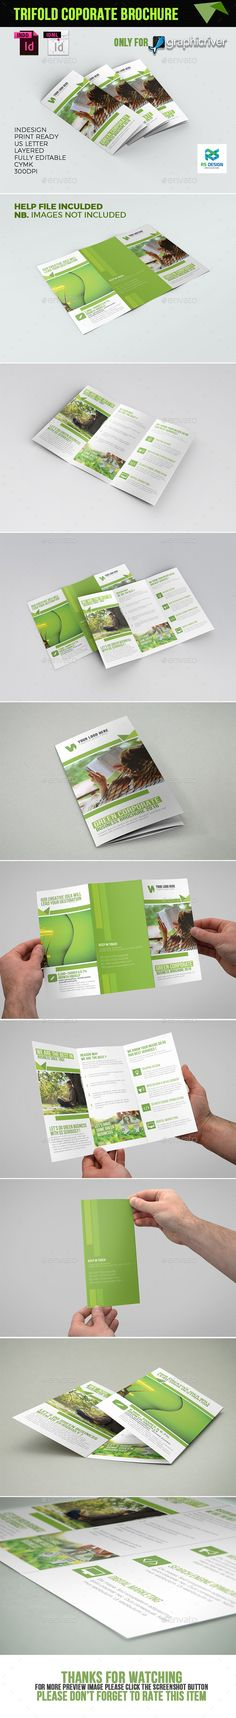 Trifold Brochure Template InDesign INDD. Download here: https://graphicriver.net/item/trifold/17226109?ref=ksioks